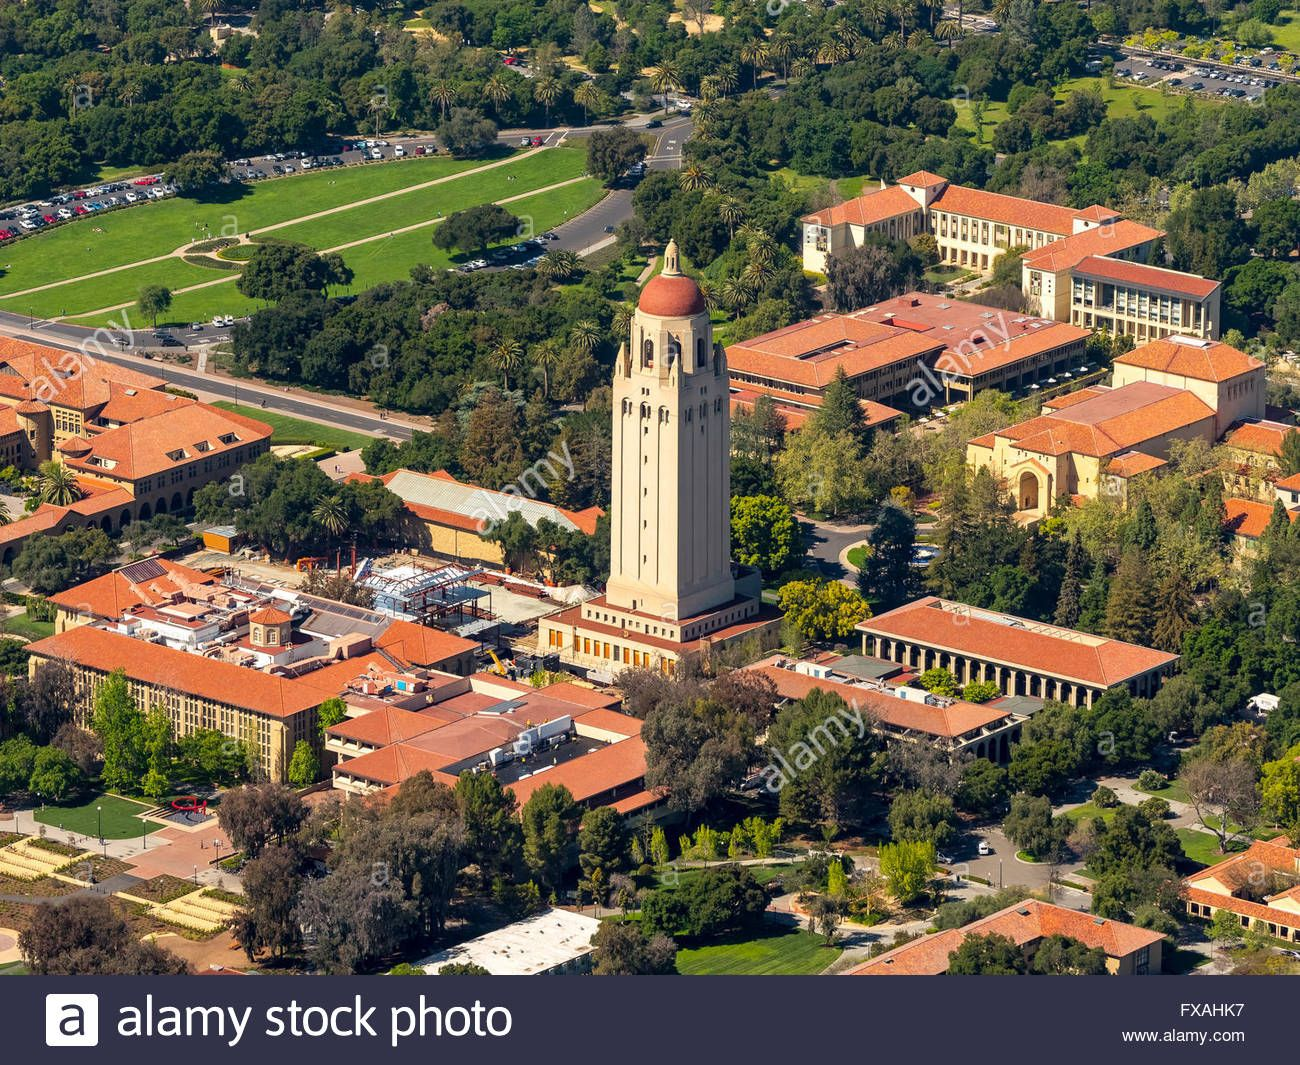 Stanford dorm virtual tour stanford university stanford dorm rooms - University Campus Stanford University With Hoover Tower Palo Alto California Silicon Valley